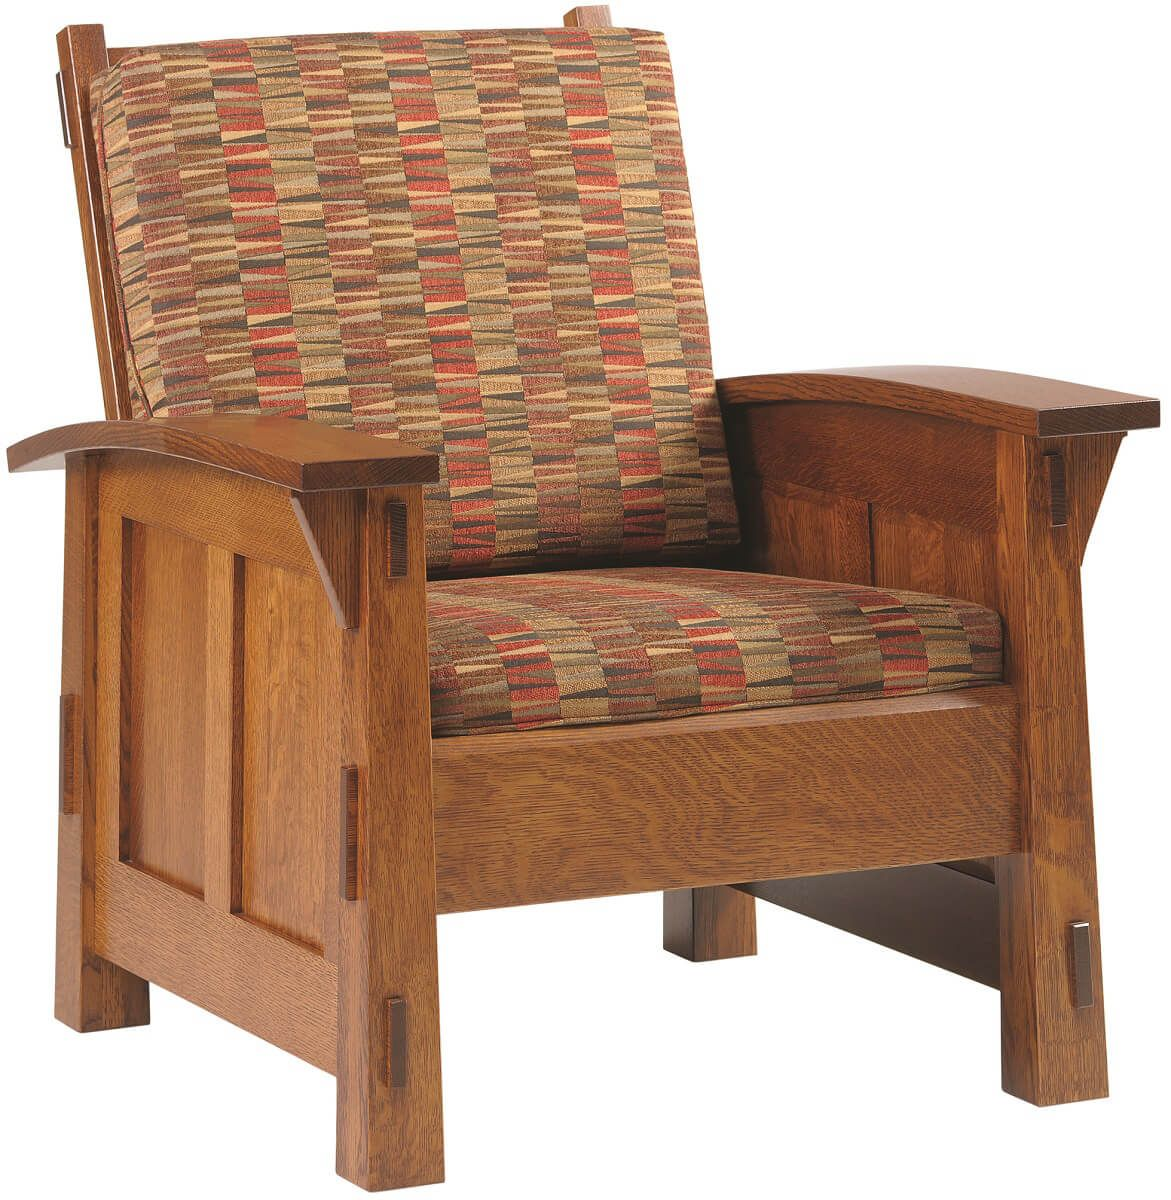 Woodley Road Chair